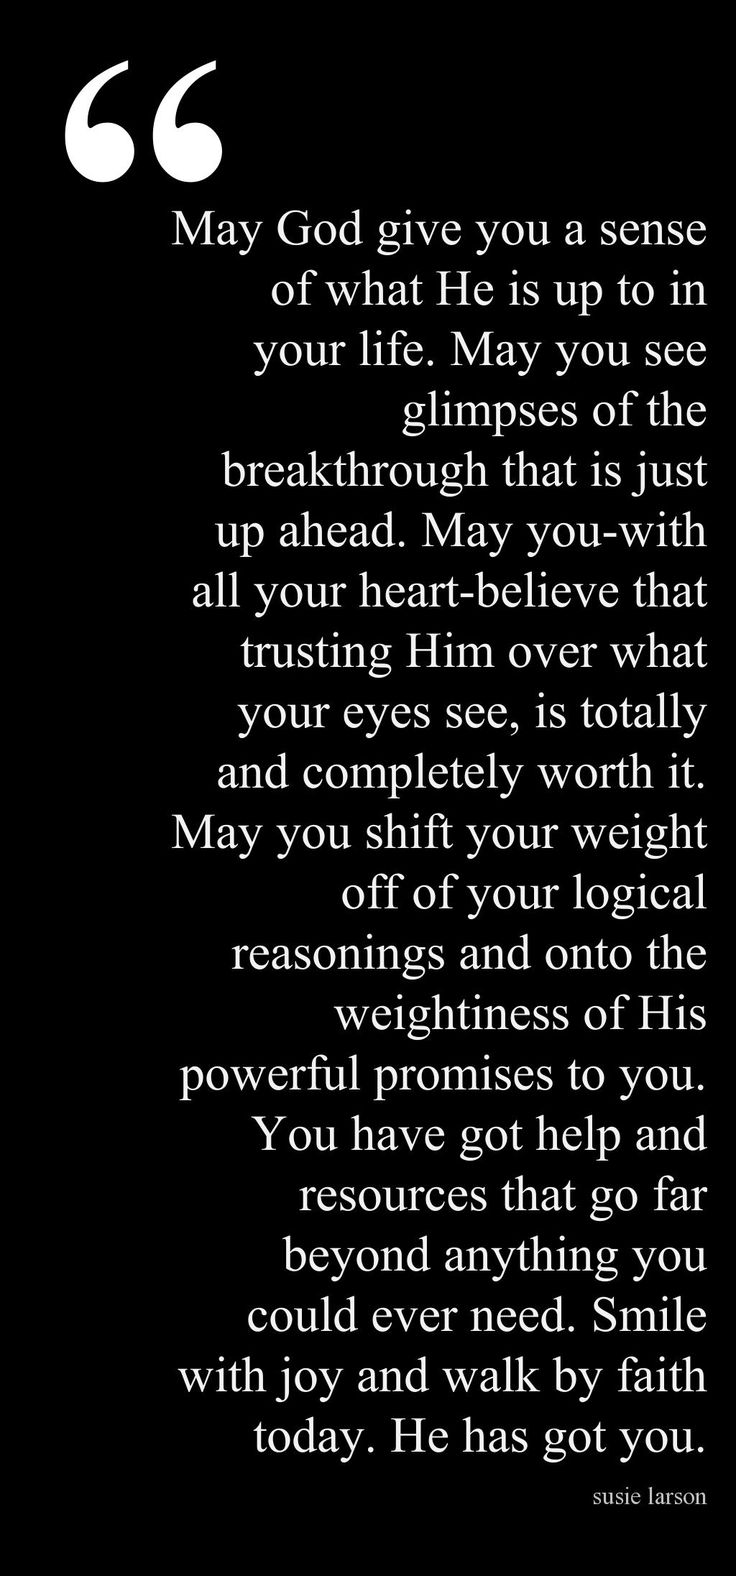 Having faith that Gods plan for you is far beyond your imagination. May you feel the burdens lifted and your way illuminated with the light of His leading.❤️